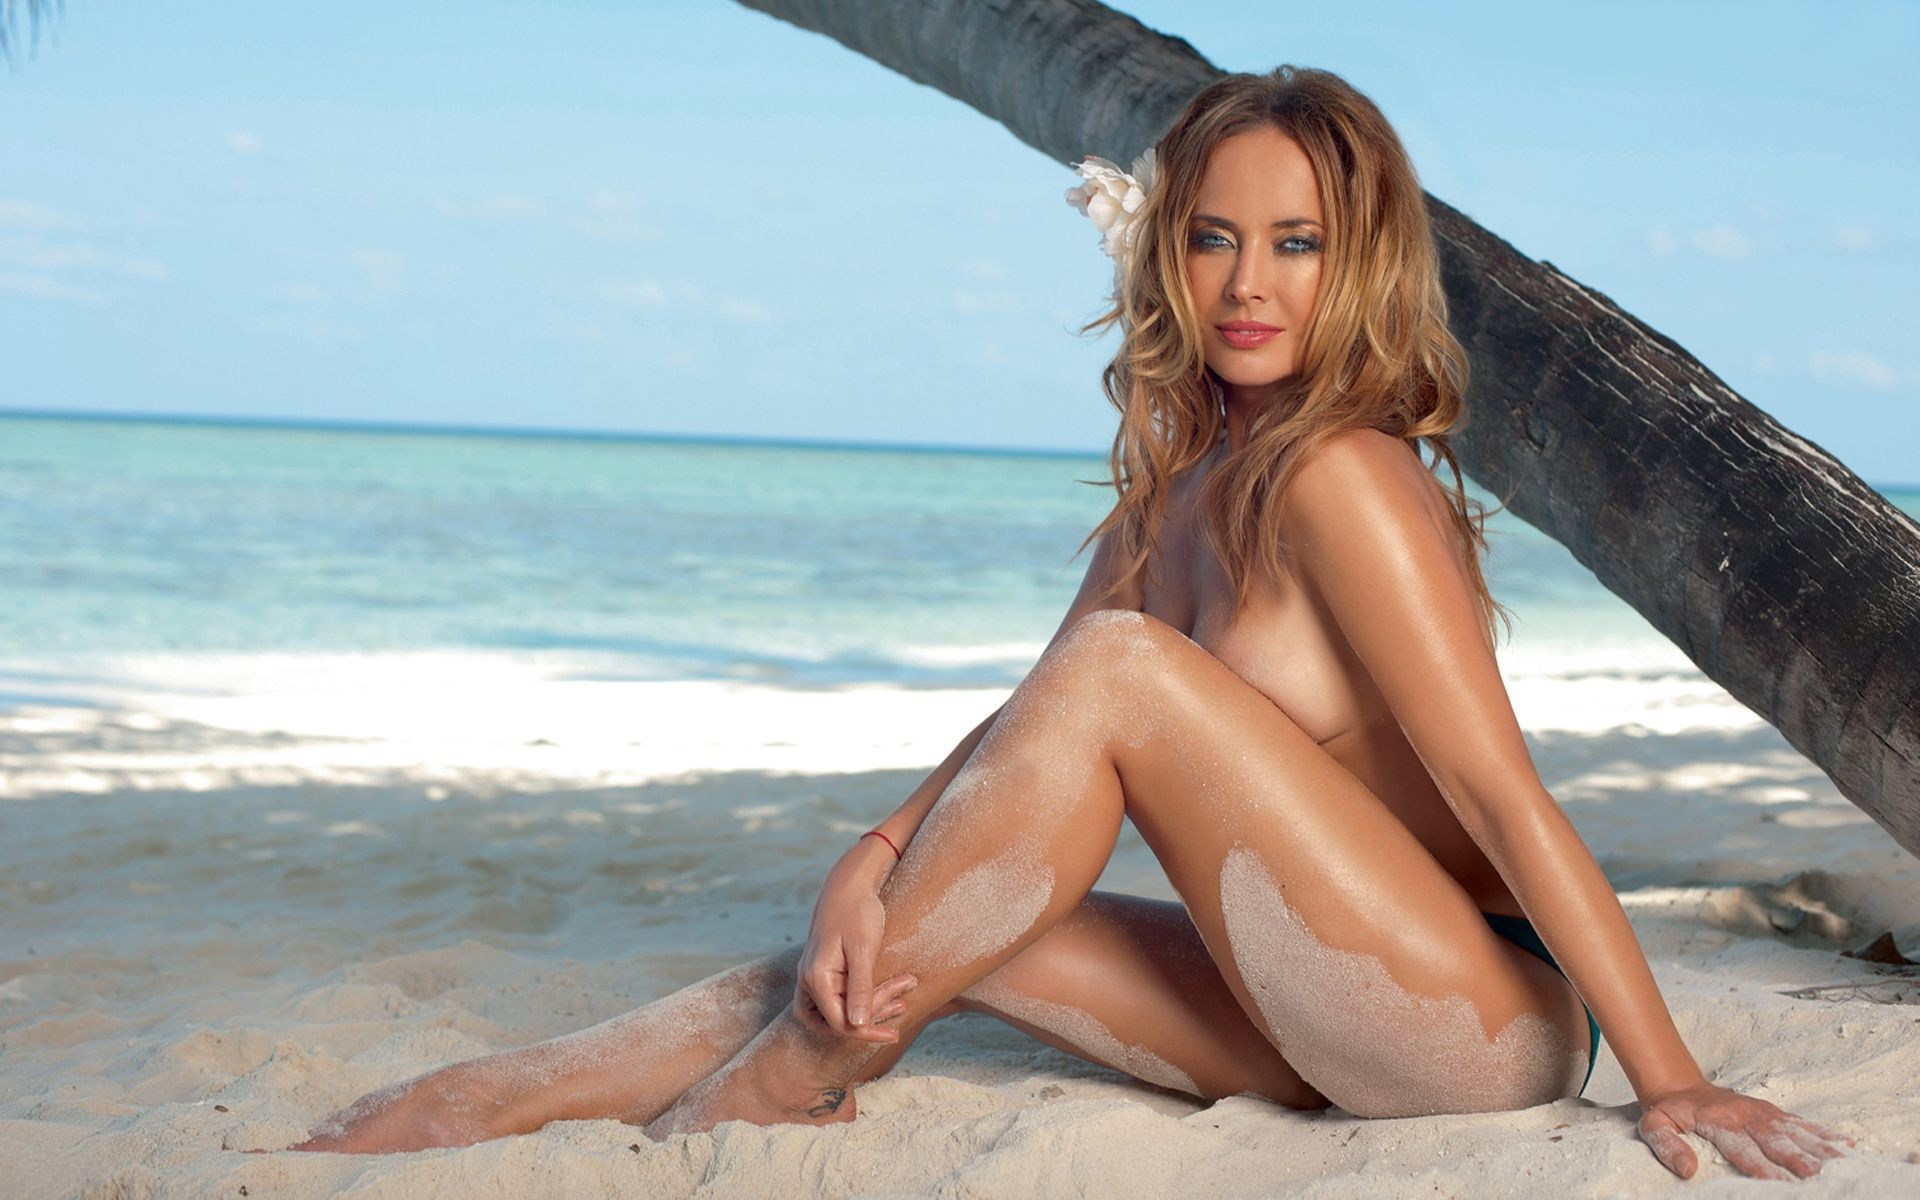 Zhanna Friske on the beach